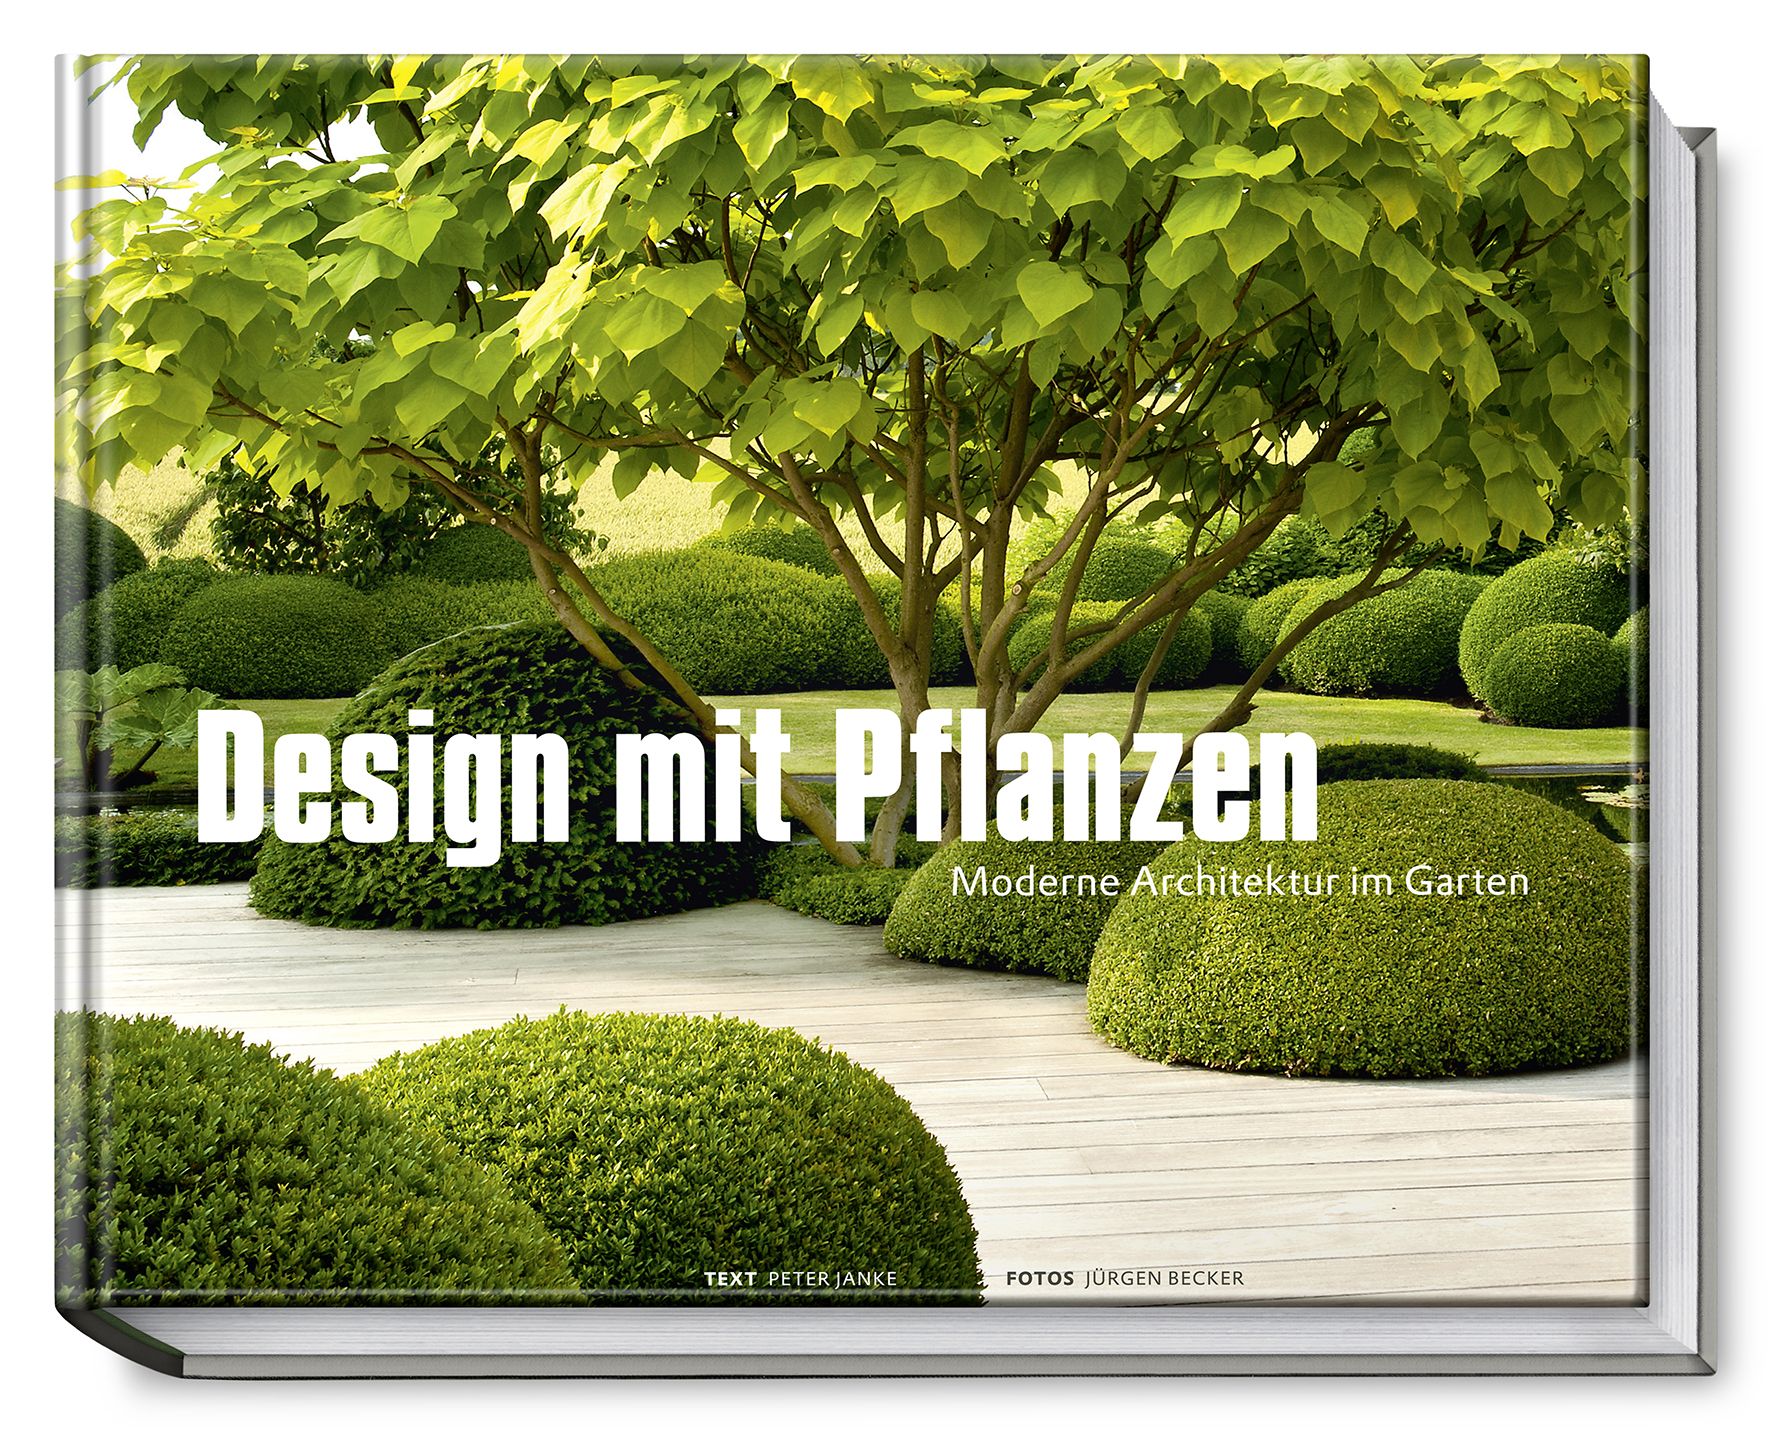 Cover download for Designer pflanzen